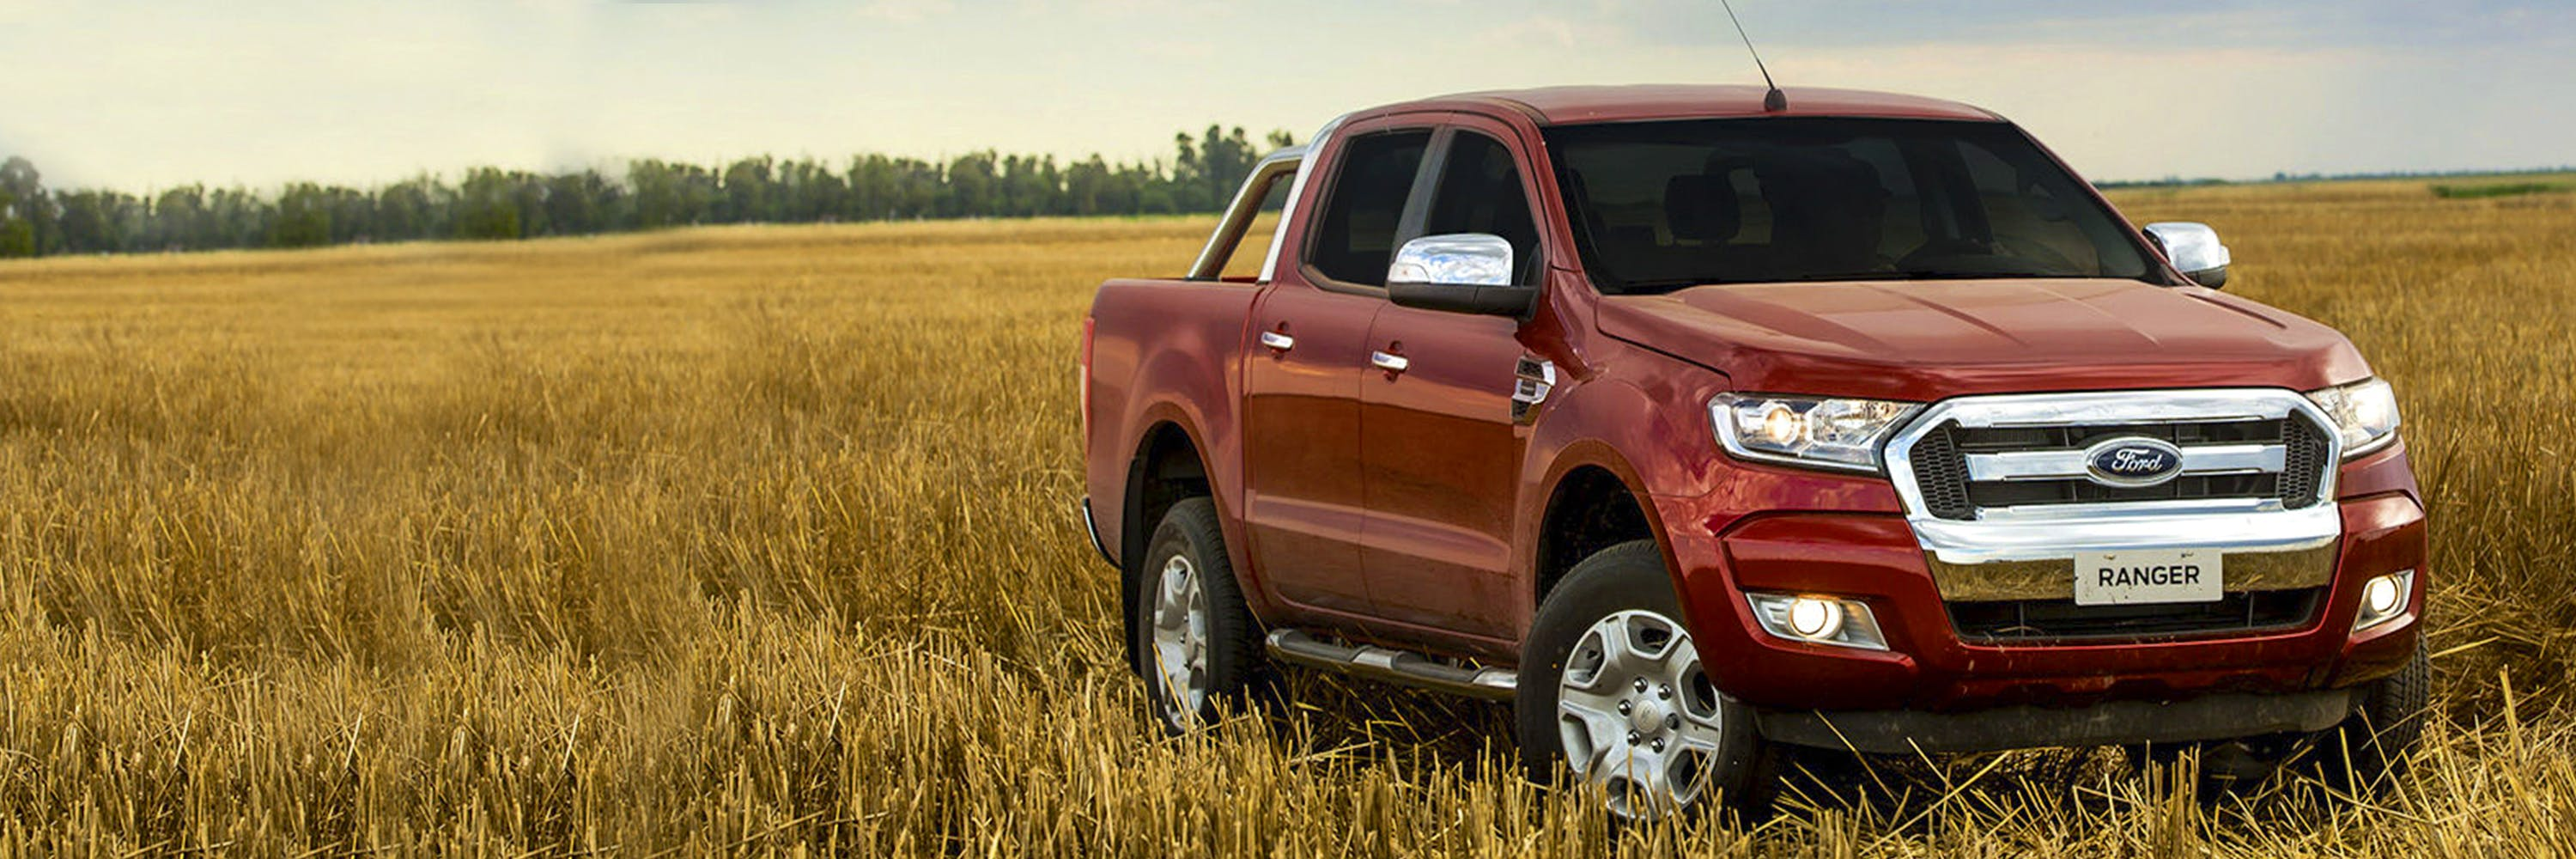 Ford Ranger Limited 3.2 Diesel 4x4 AT 2019